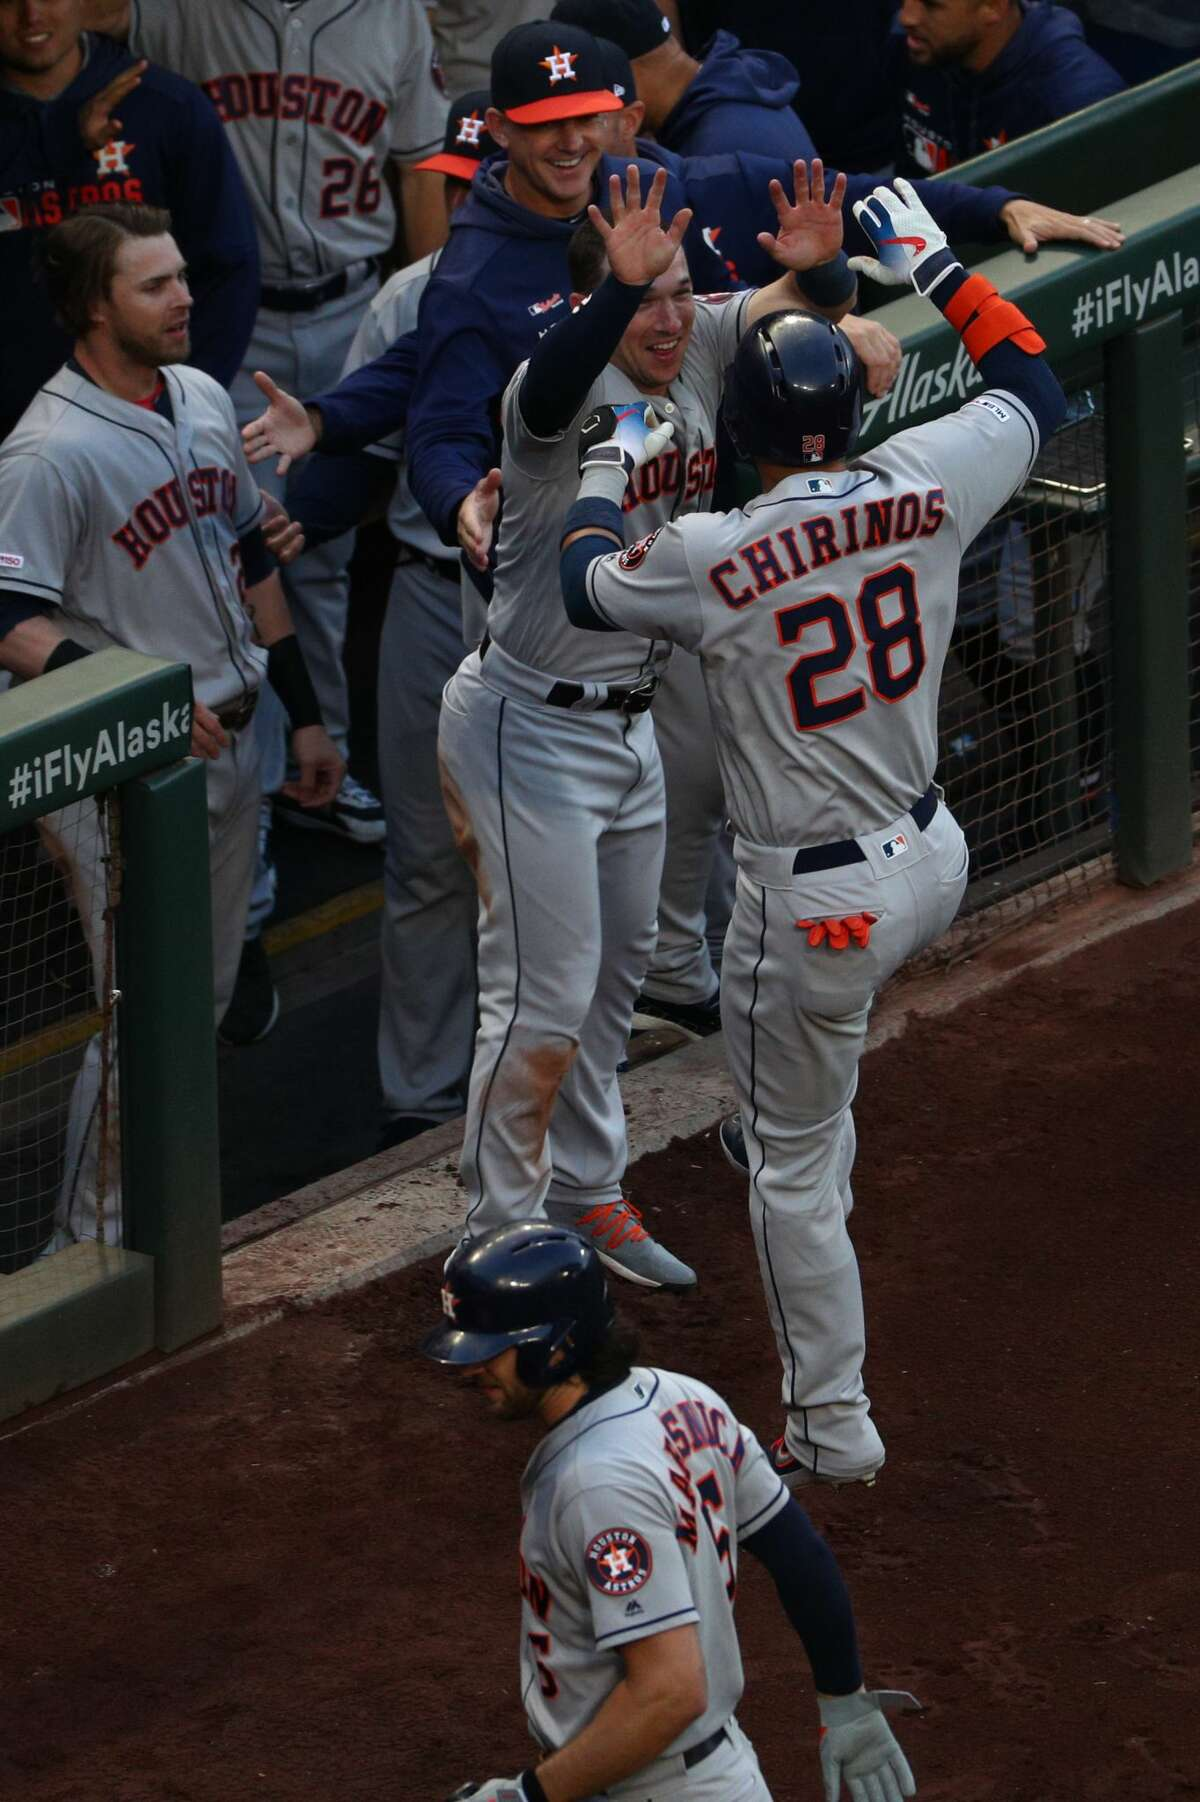 SEATTLE, WASHINGTON - JUNE 03: Robinson Chirinos #28 of the Houston Astros celebrates with teammates after hitting a solo home run against the Seattle Mariners in the first inning during their game at T-Mobile Park on June 03, 2019 in Seattle, Washington. (Photo by Abbie Parr/Getty Images)